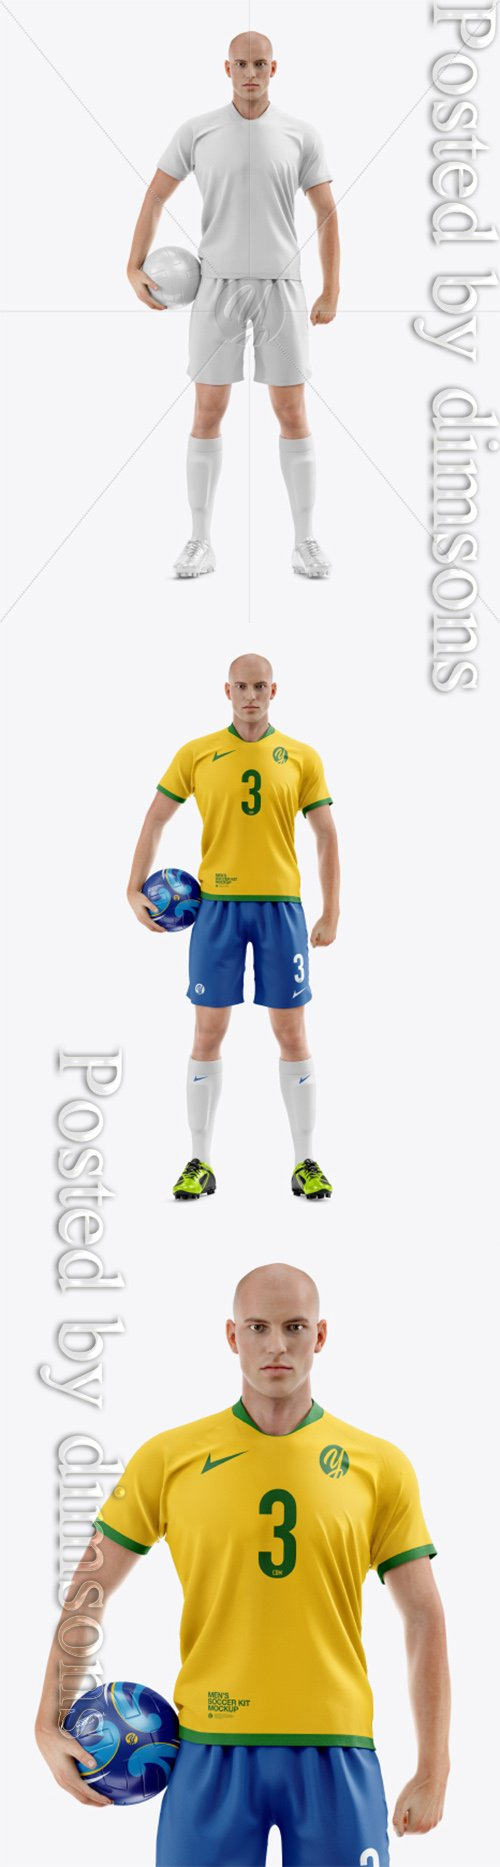 Soccer Player with Ball Mockup 41187 TIF